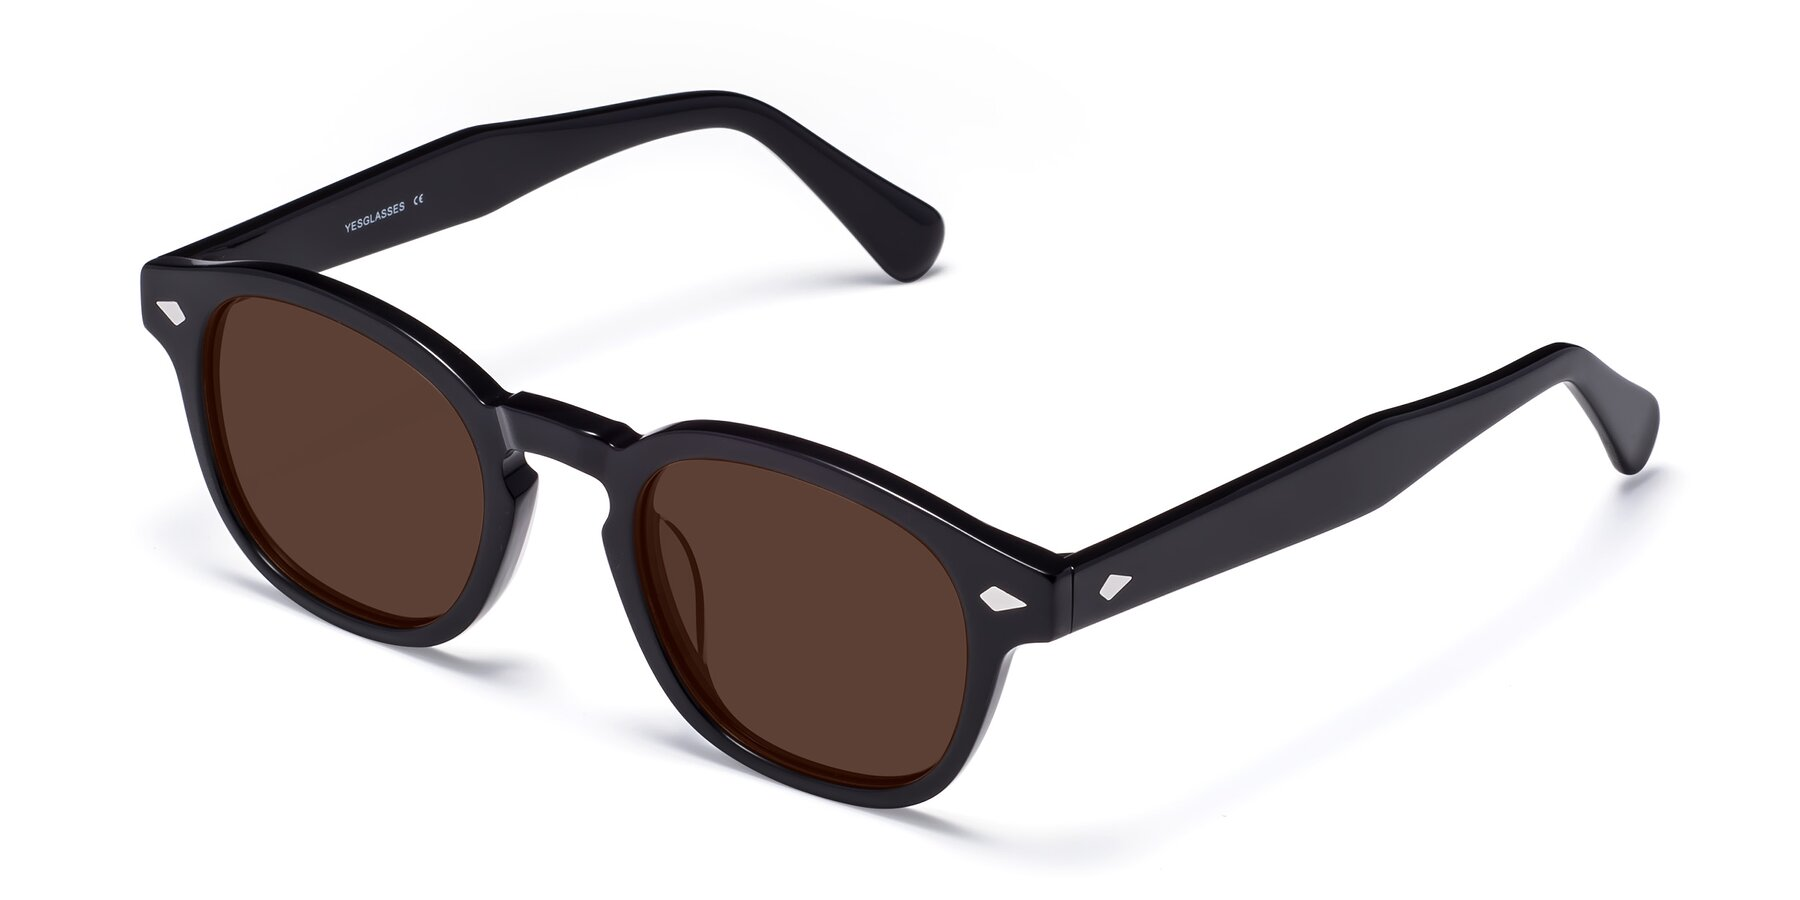 Angle of WALL-E in Black with Brown Tinted Lenses